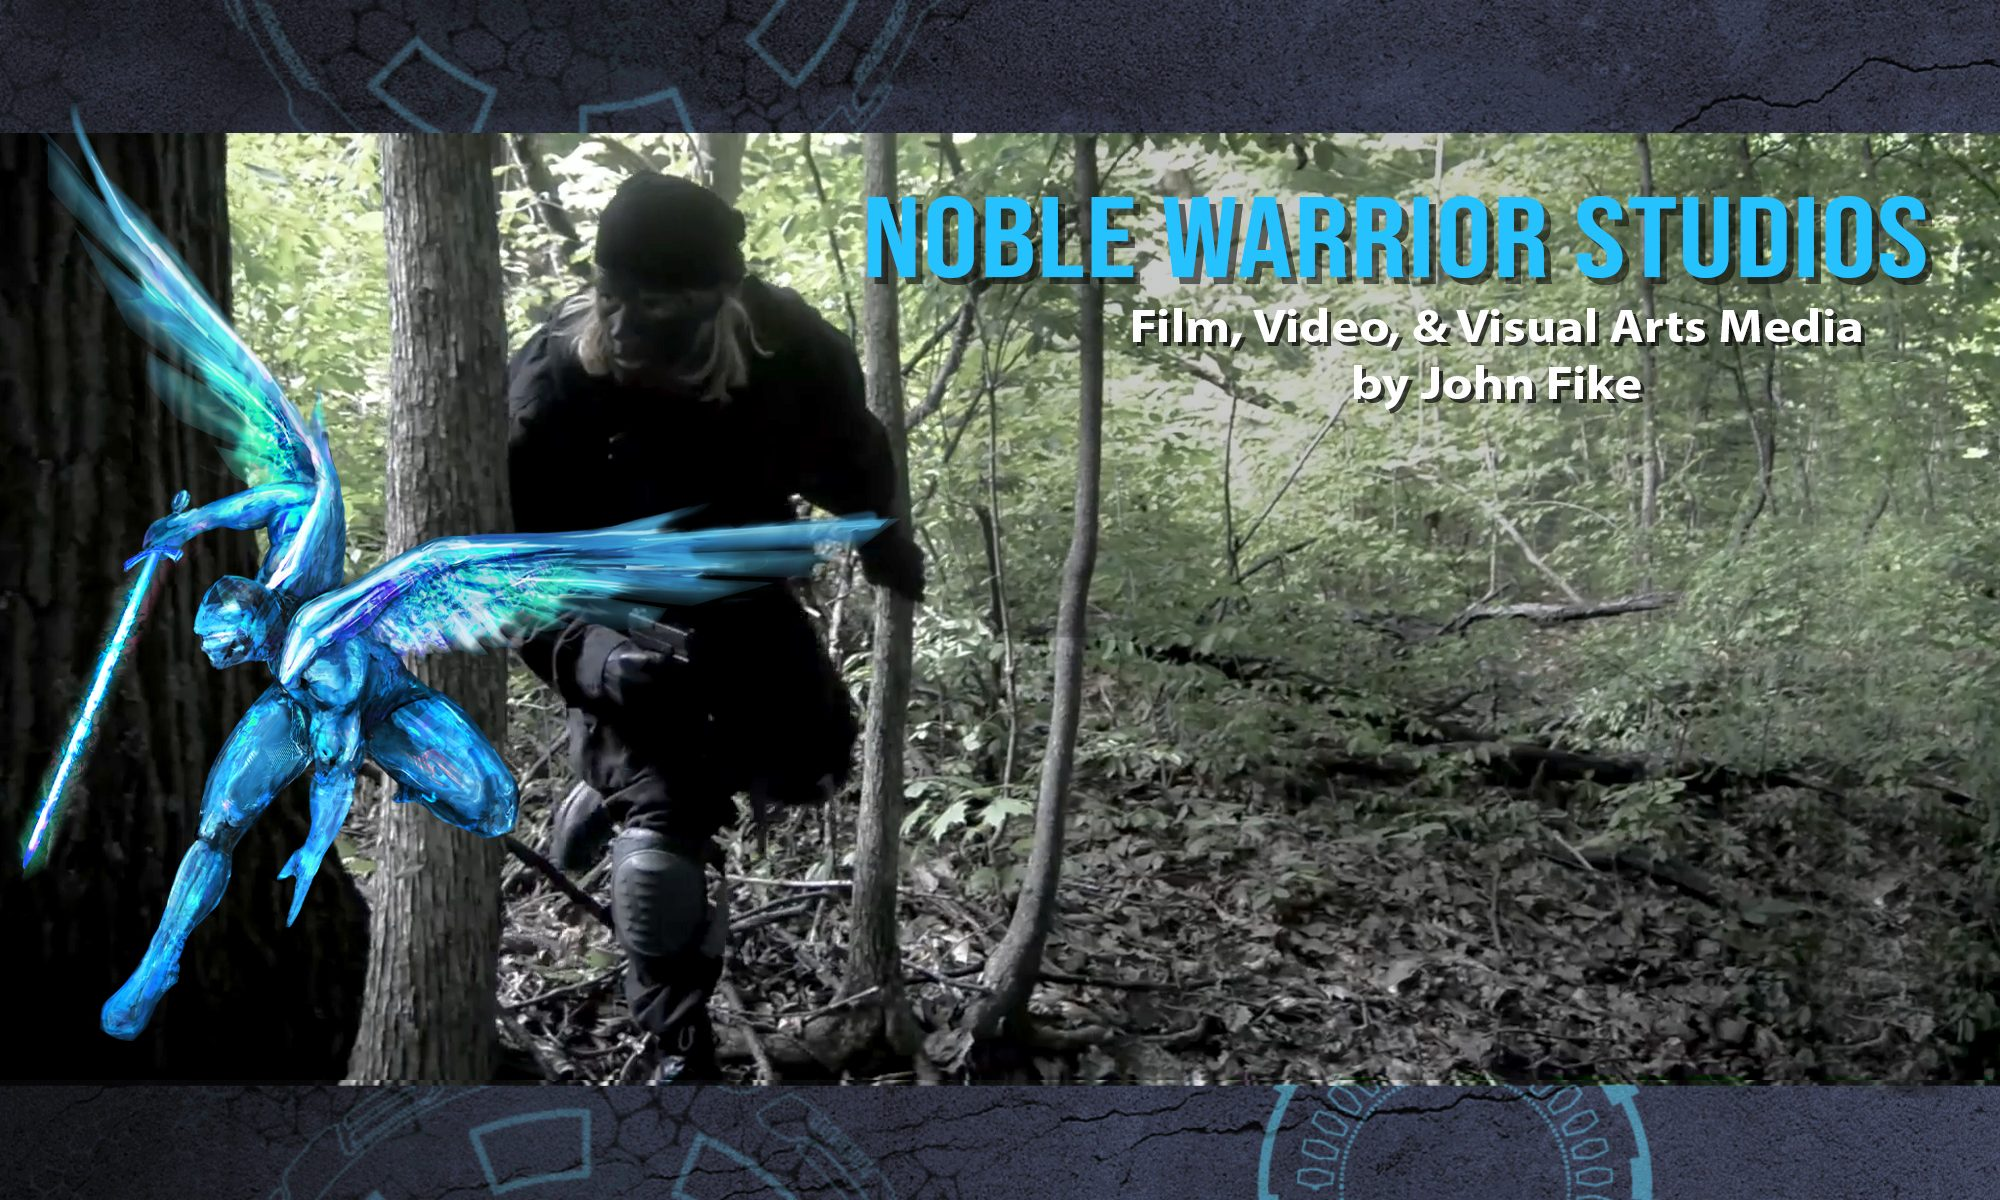 Noble Warrior Studios